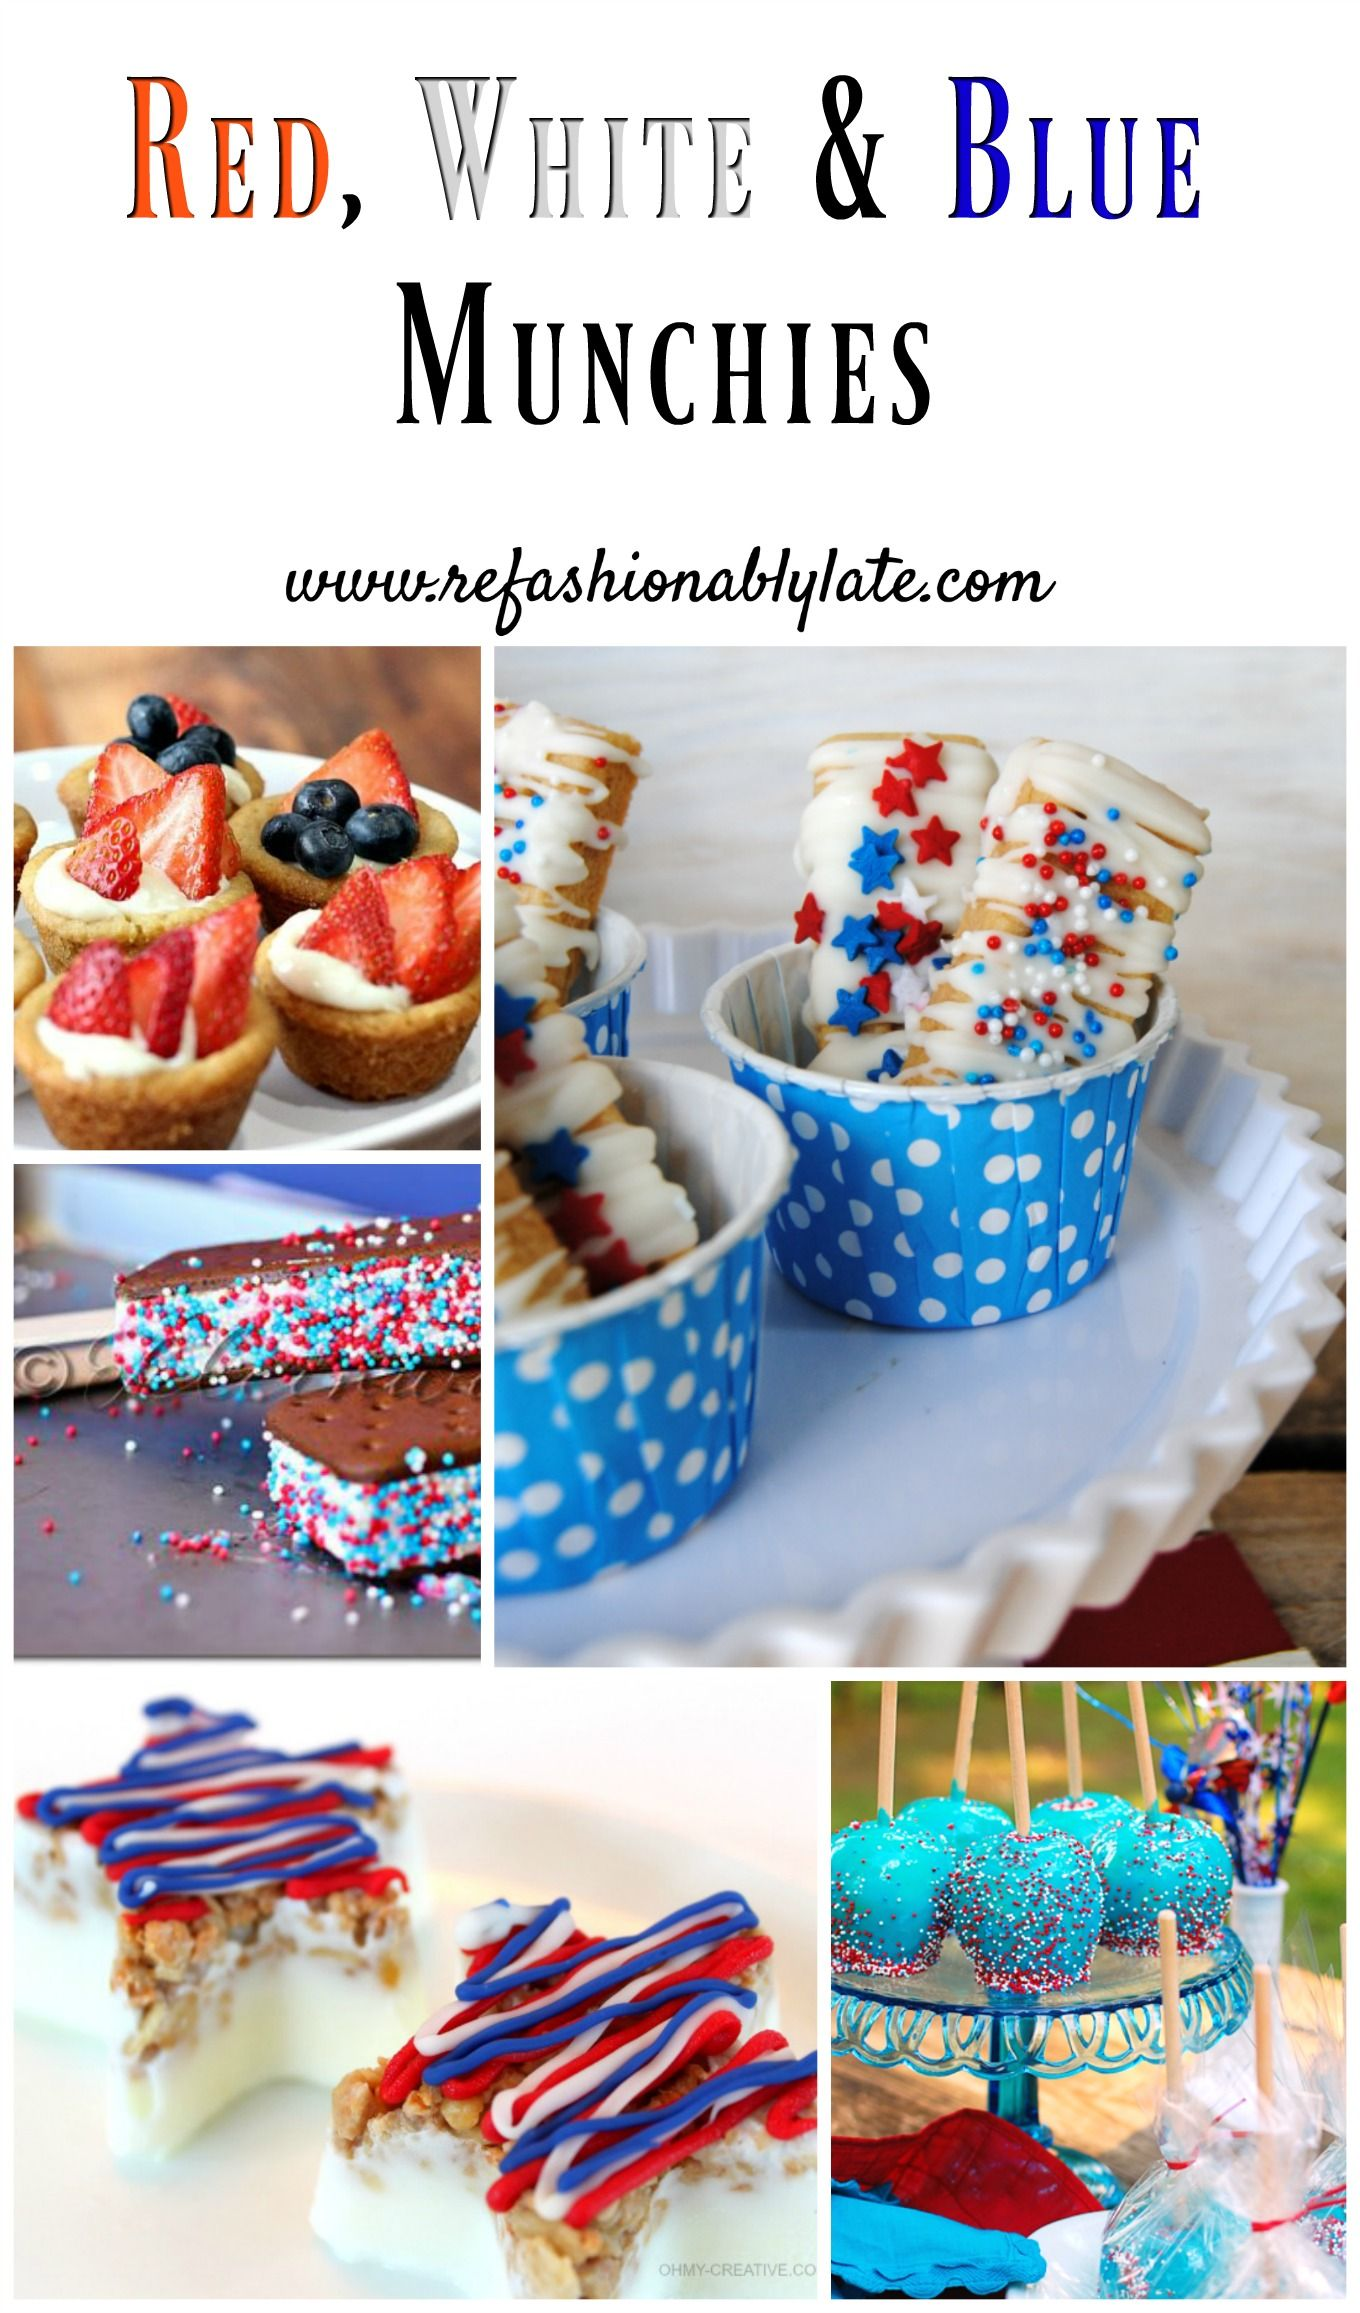 Red, White & Blue Themed Munchies Great for Labor Day! www.refashionablylate.com